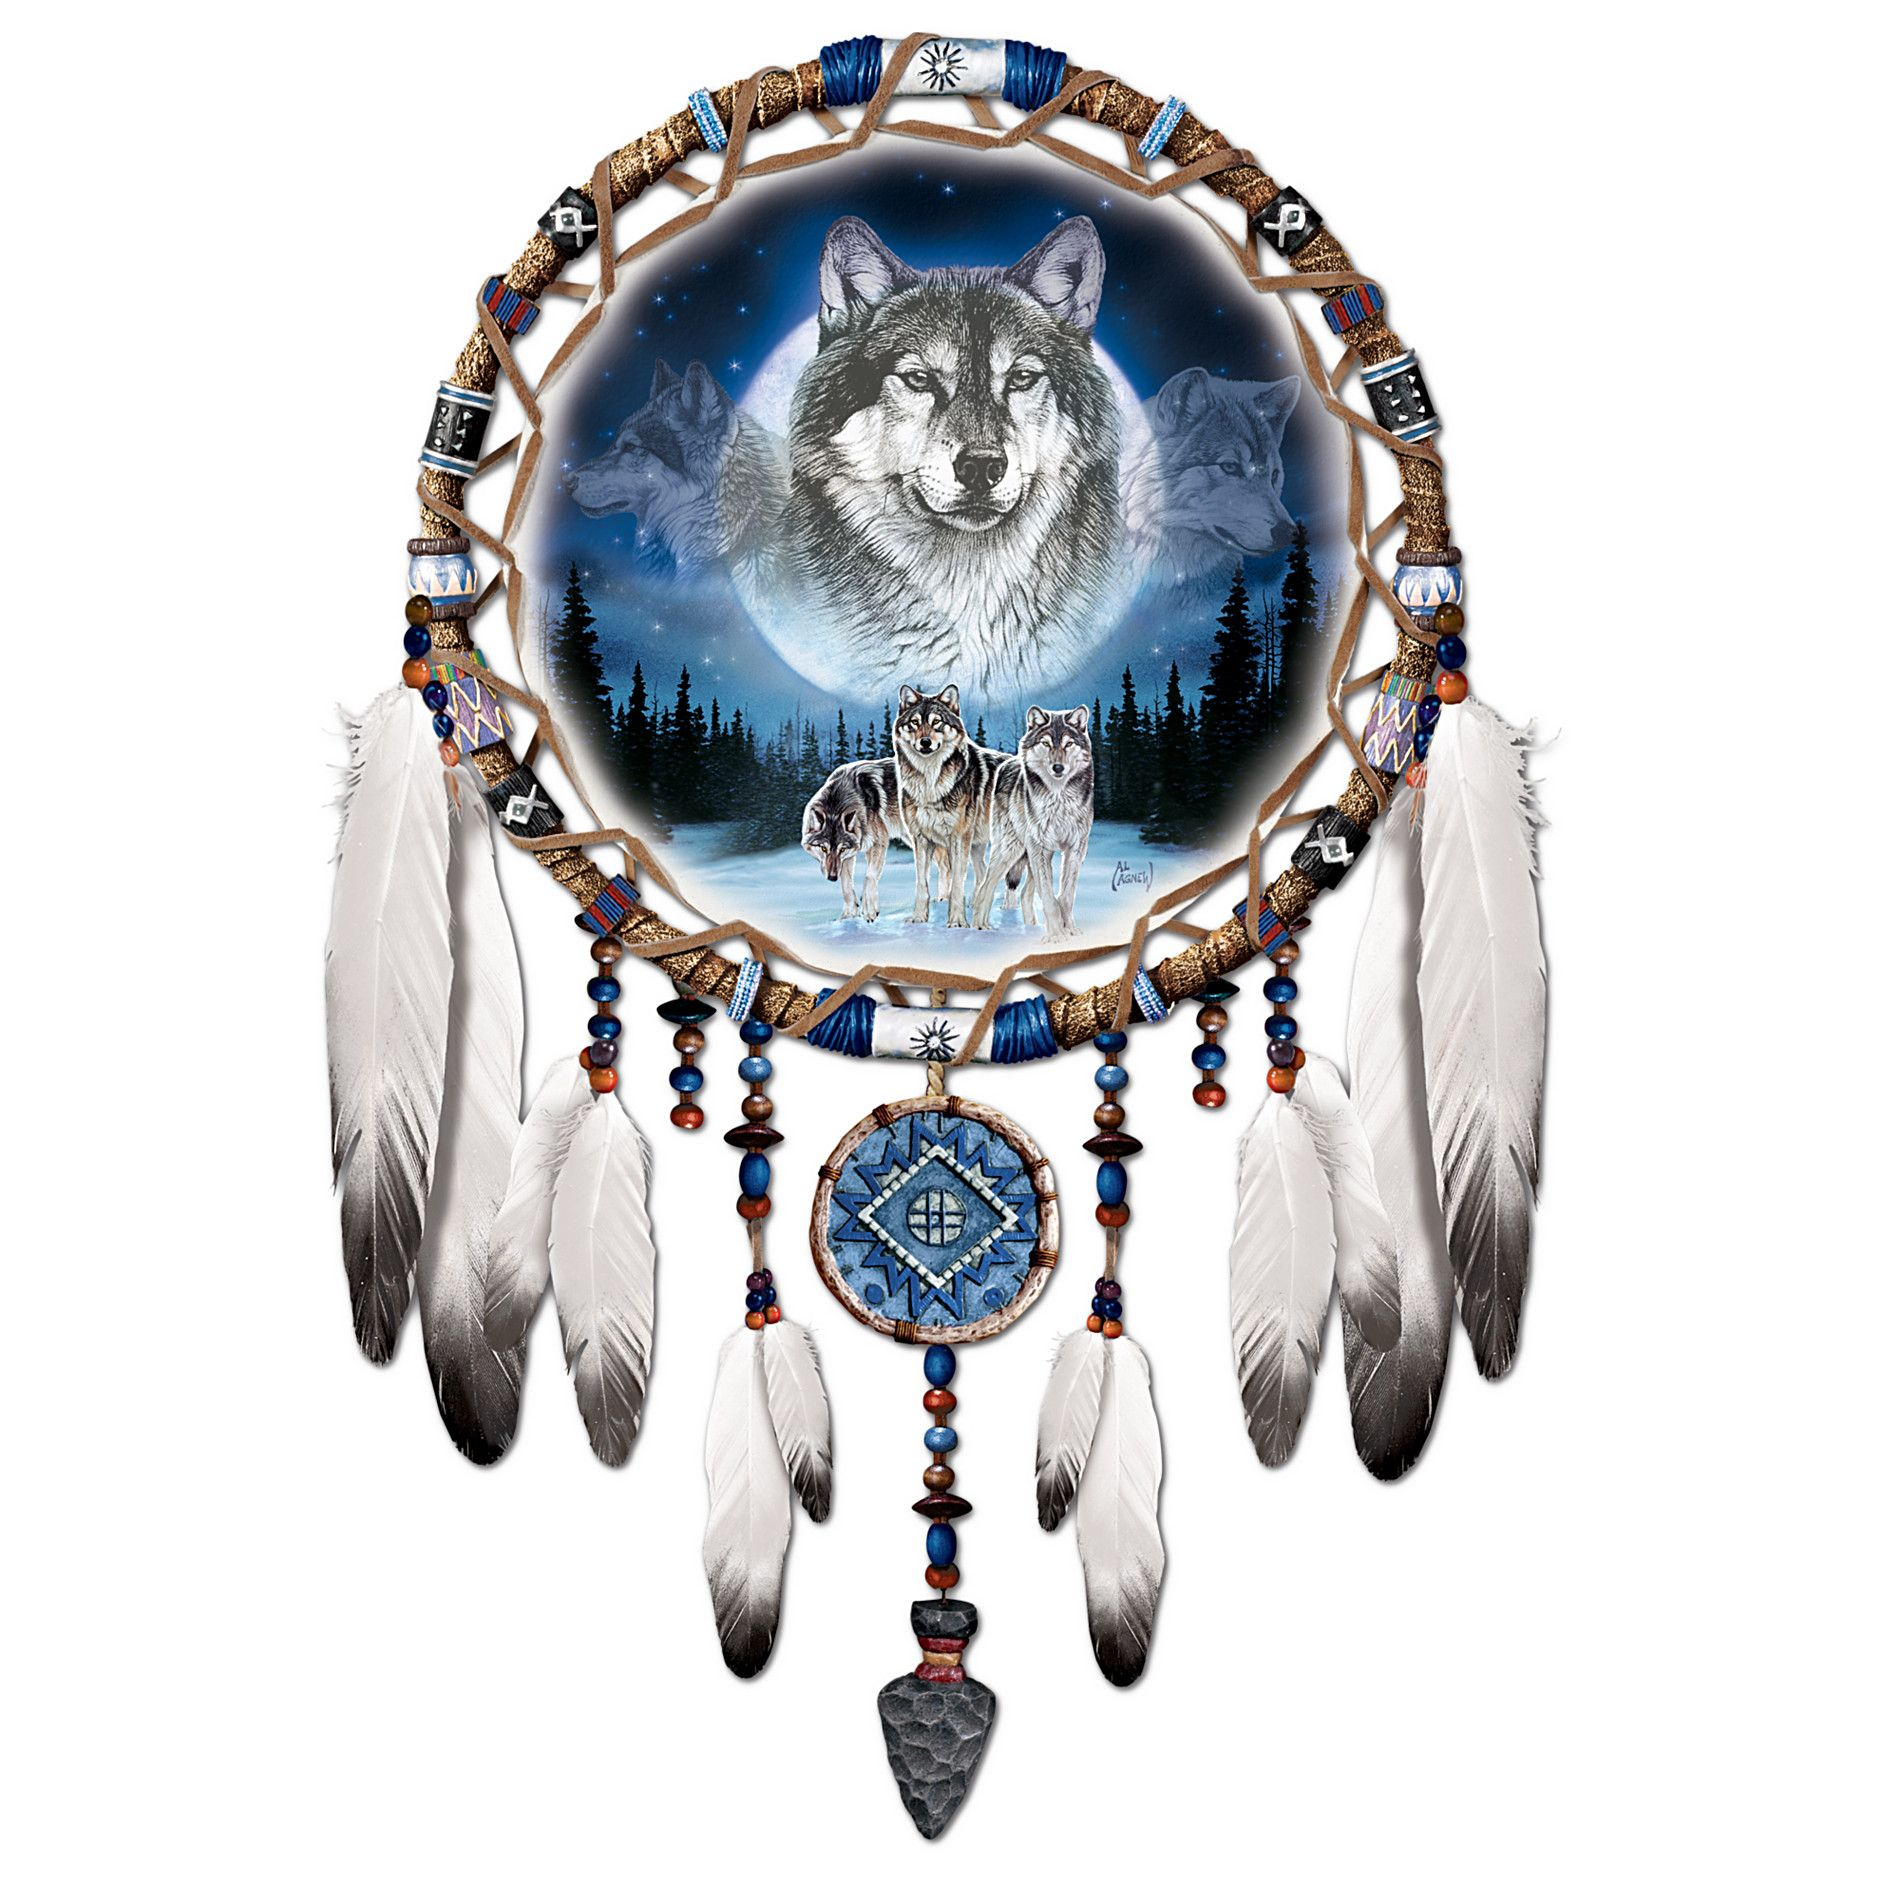 Dream Catchers Made By Native Americans How dream catcher stepstep ehow Dream catchers derived from 37